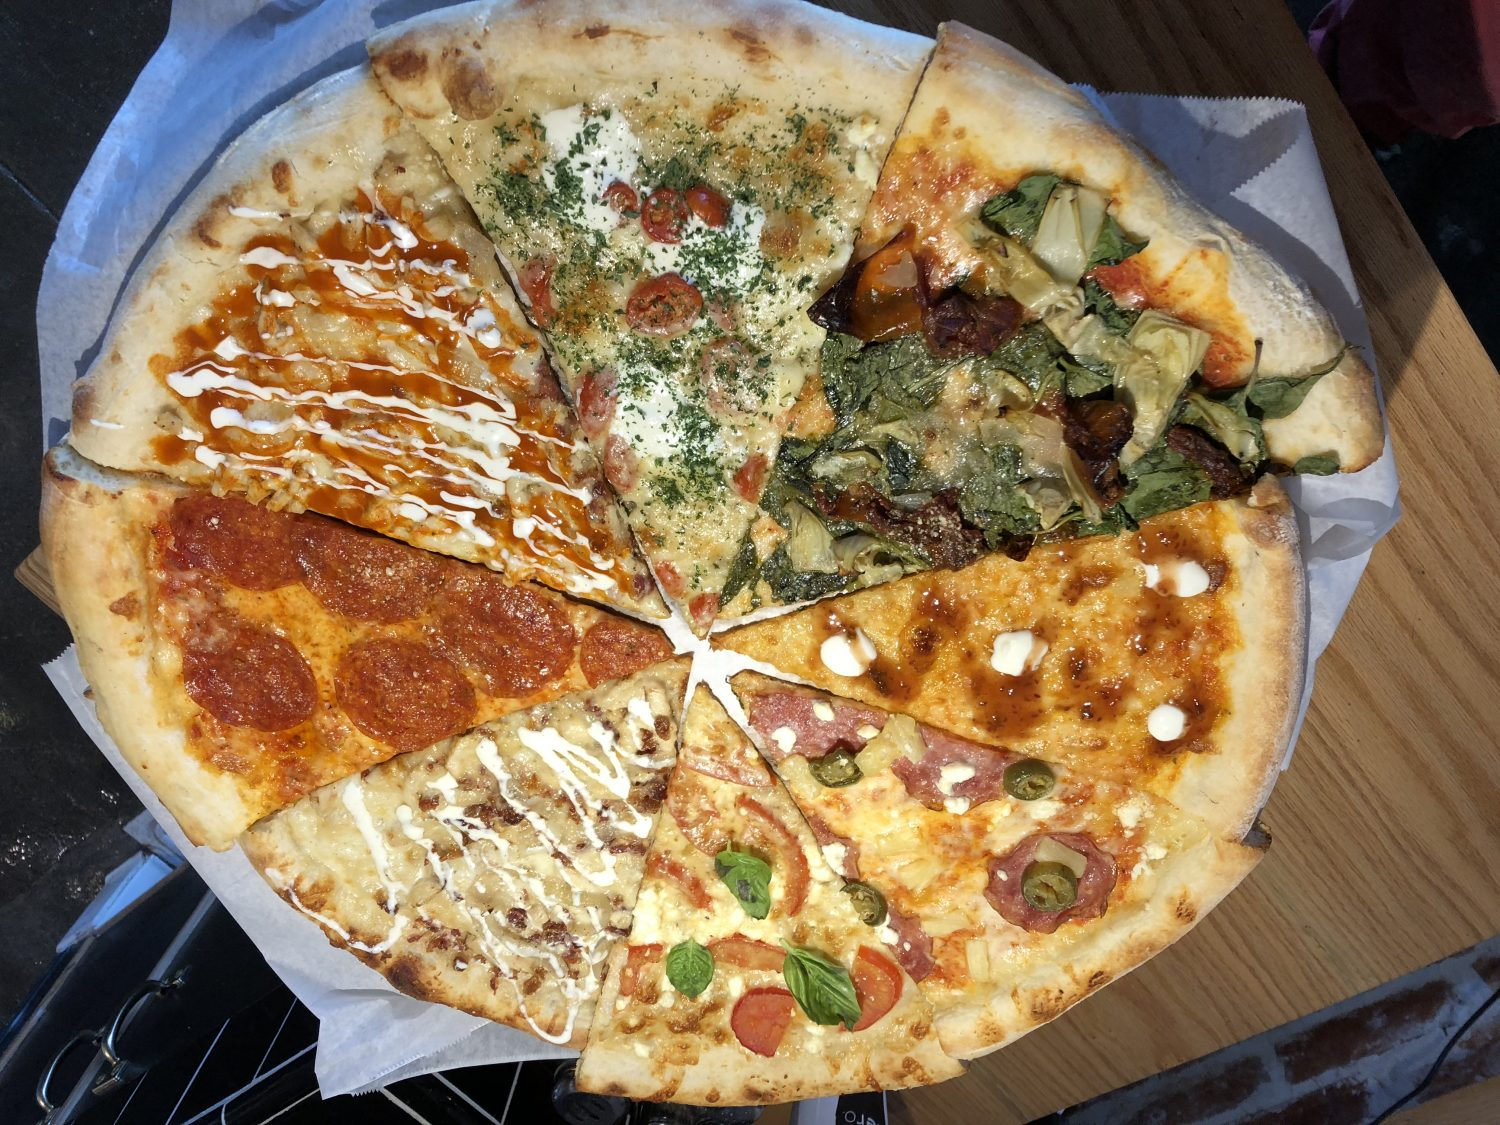 East Coast style pizza at Mr Moto in Point Loma San Diego